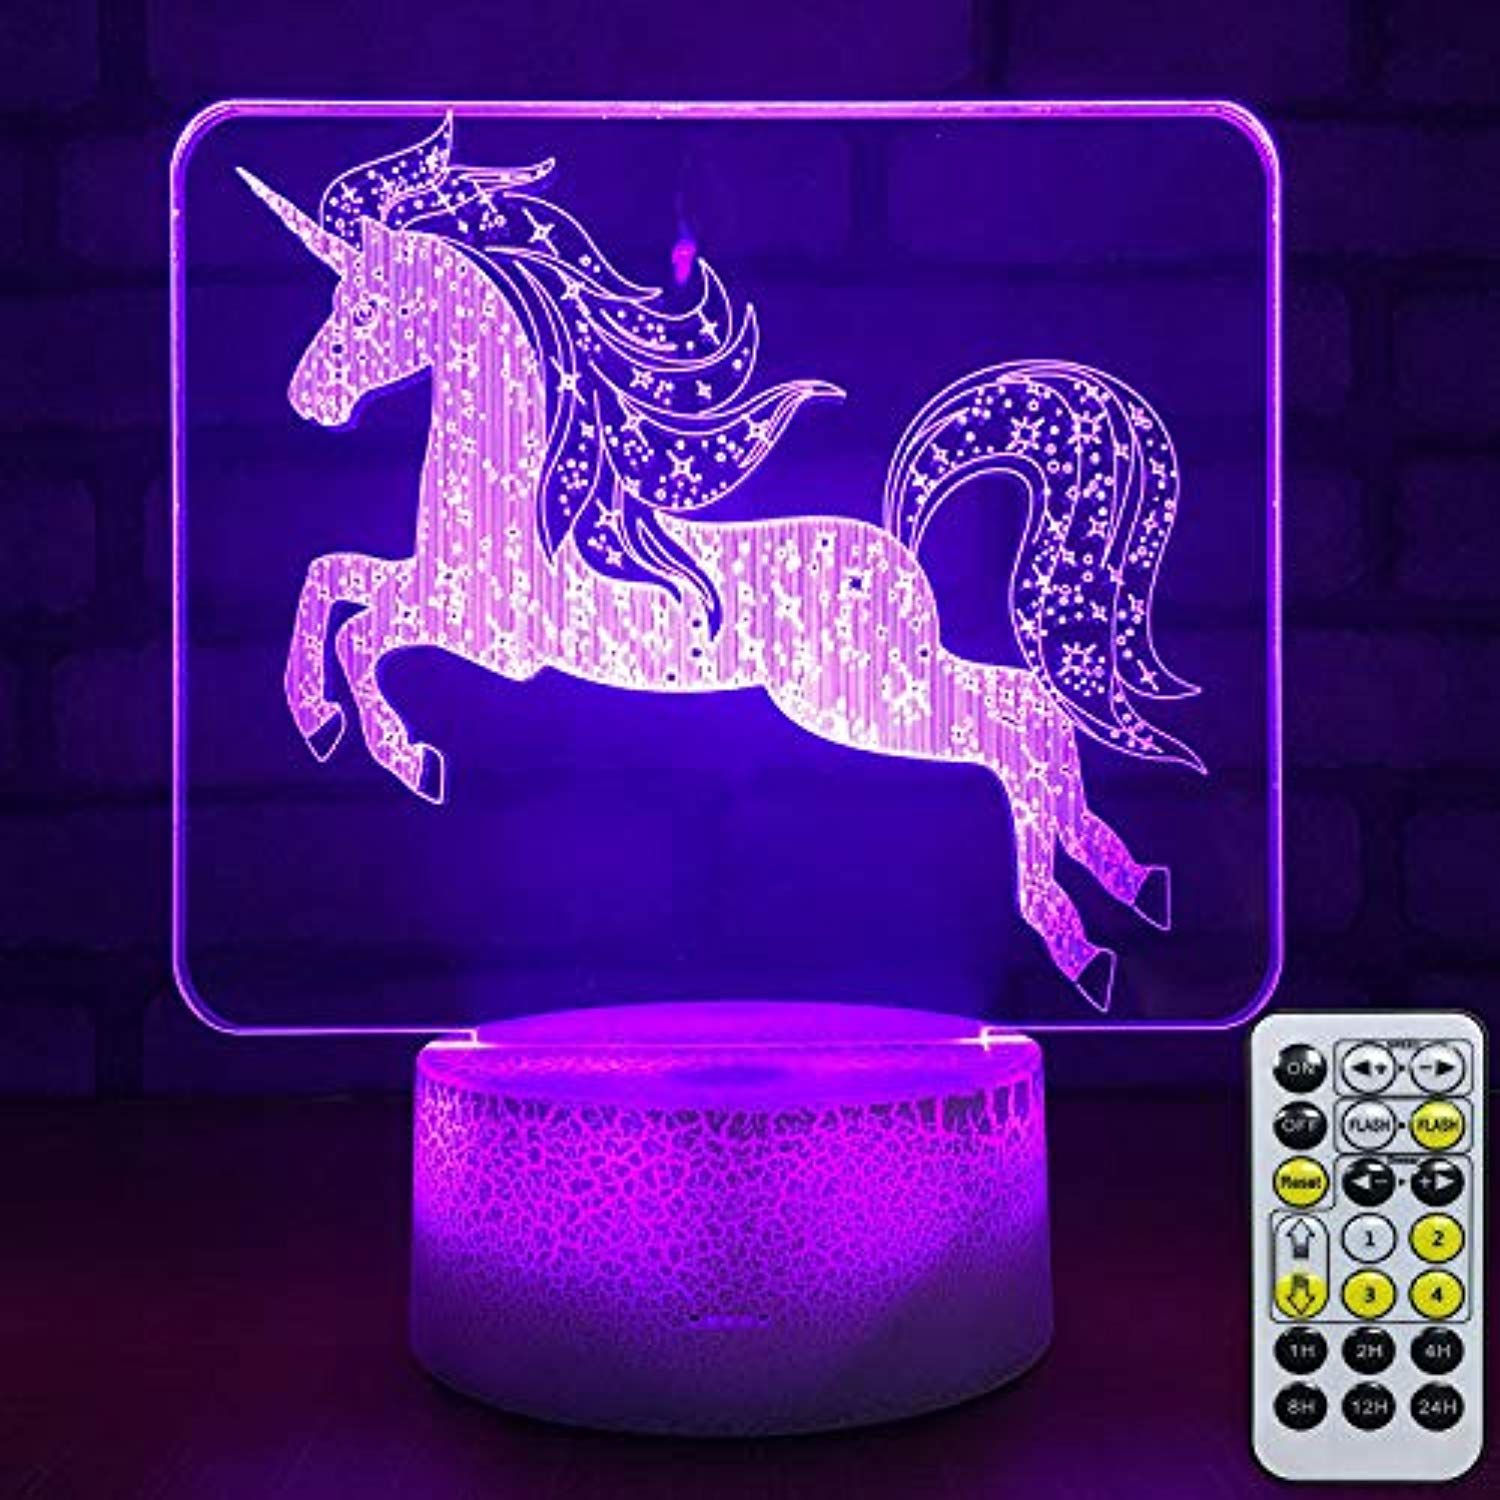 Viran Night Lamp Unicorn 3d Night Light 3d Optical Illusion Lamp 7 Colors Change With Remote Night Lights Fo 3d Night Light Kid Room Decor 3d Optical Illusions